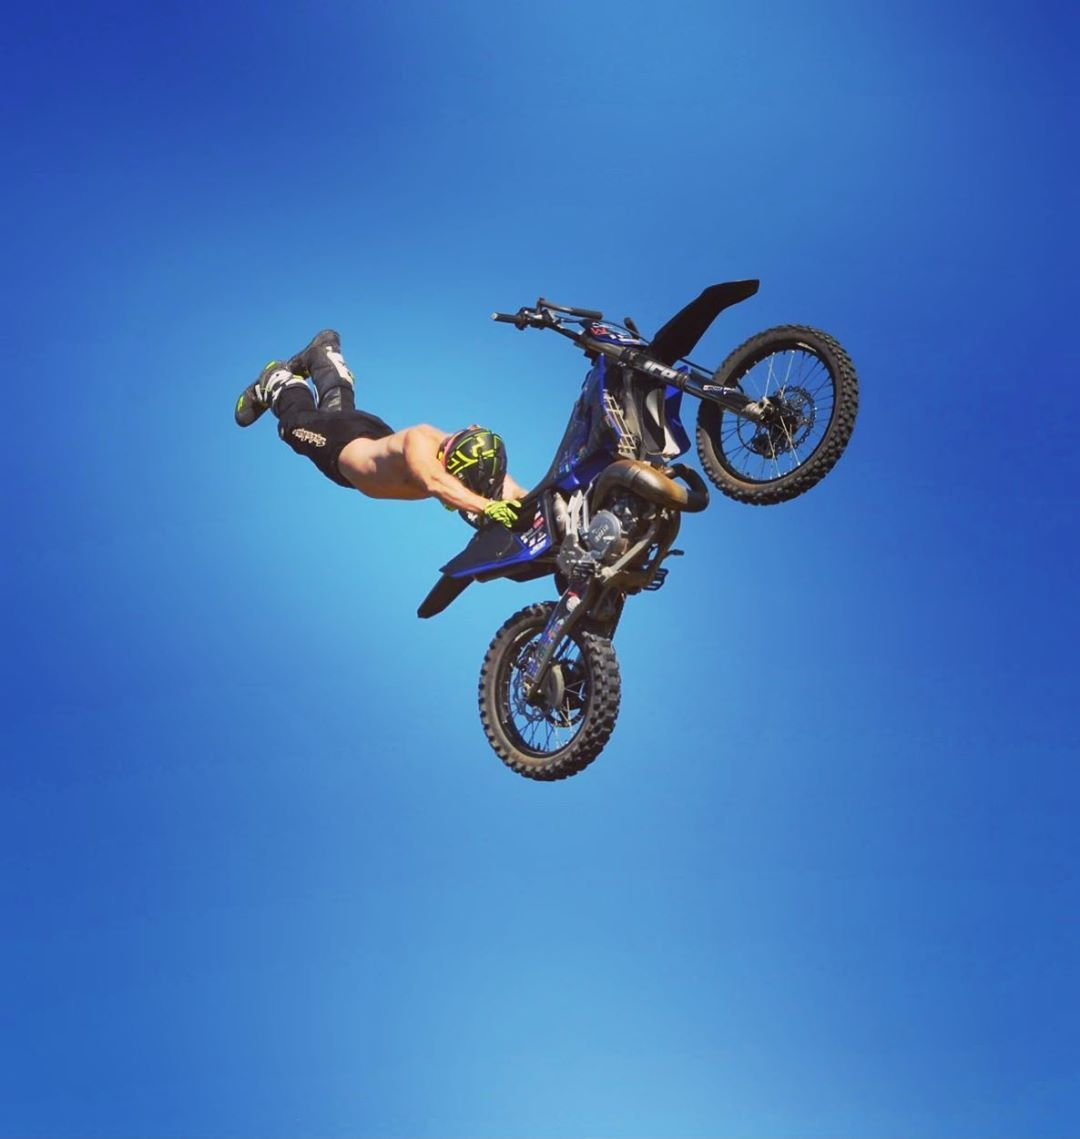 It S Whipitwednesday But I Can T Whip So Have A Double Grab